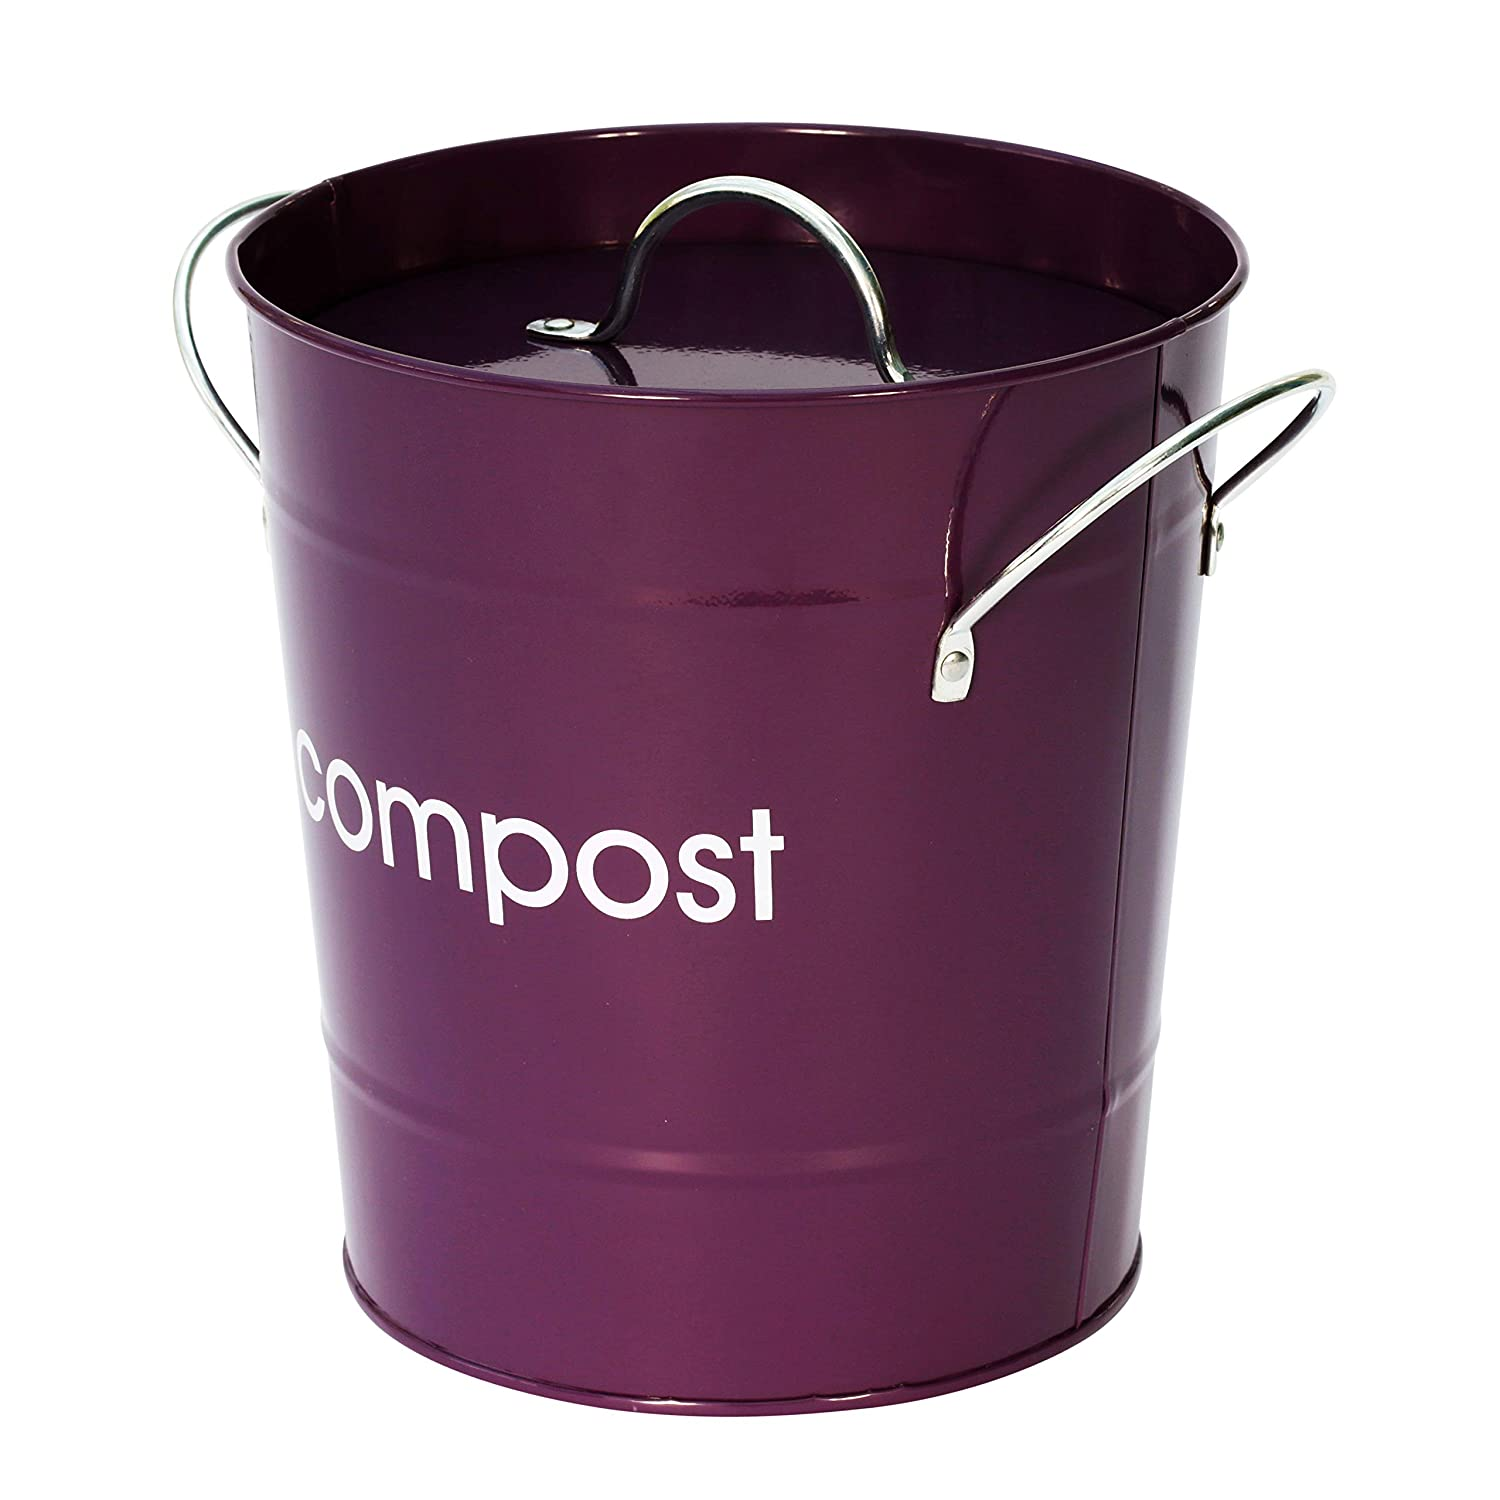 Premier Housewares - Cubo para compost, color crema: Amazon ...